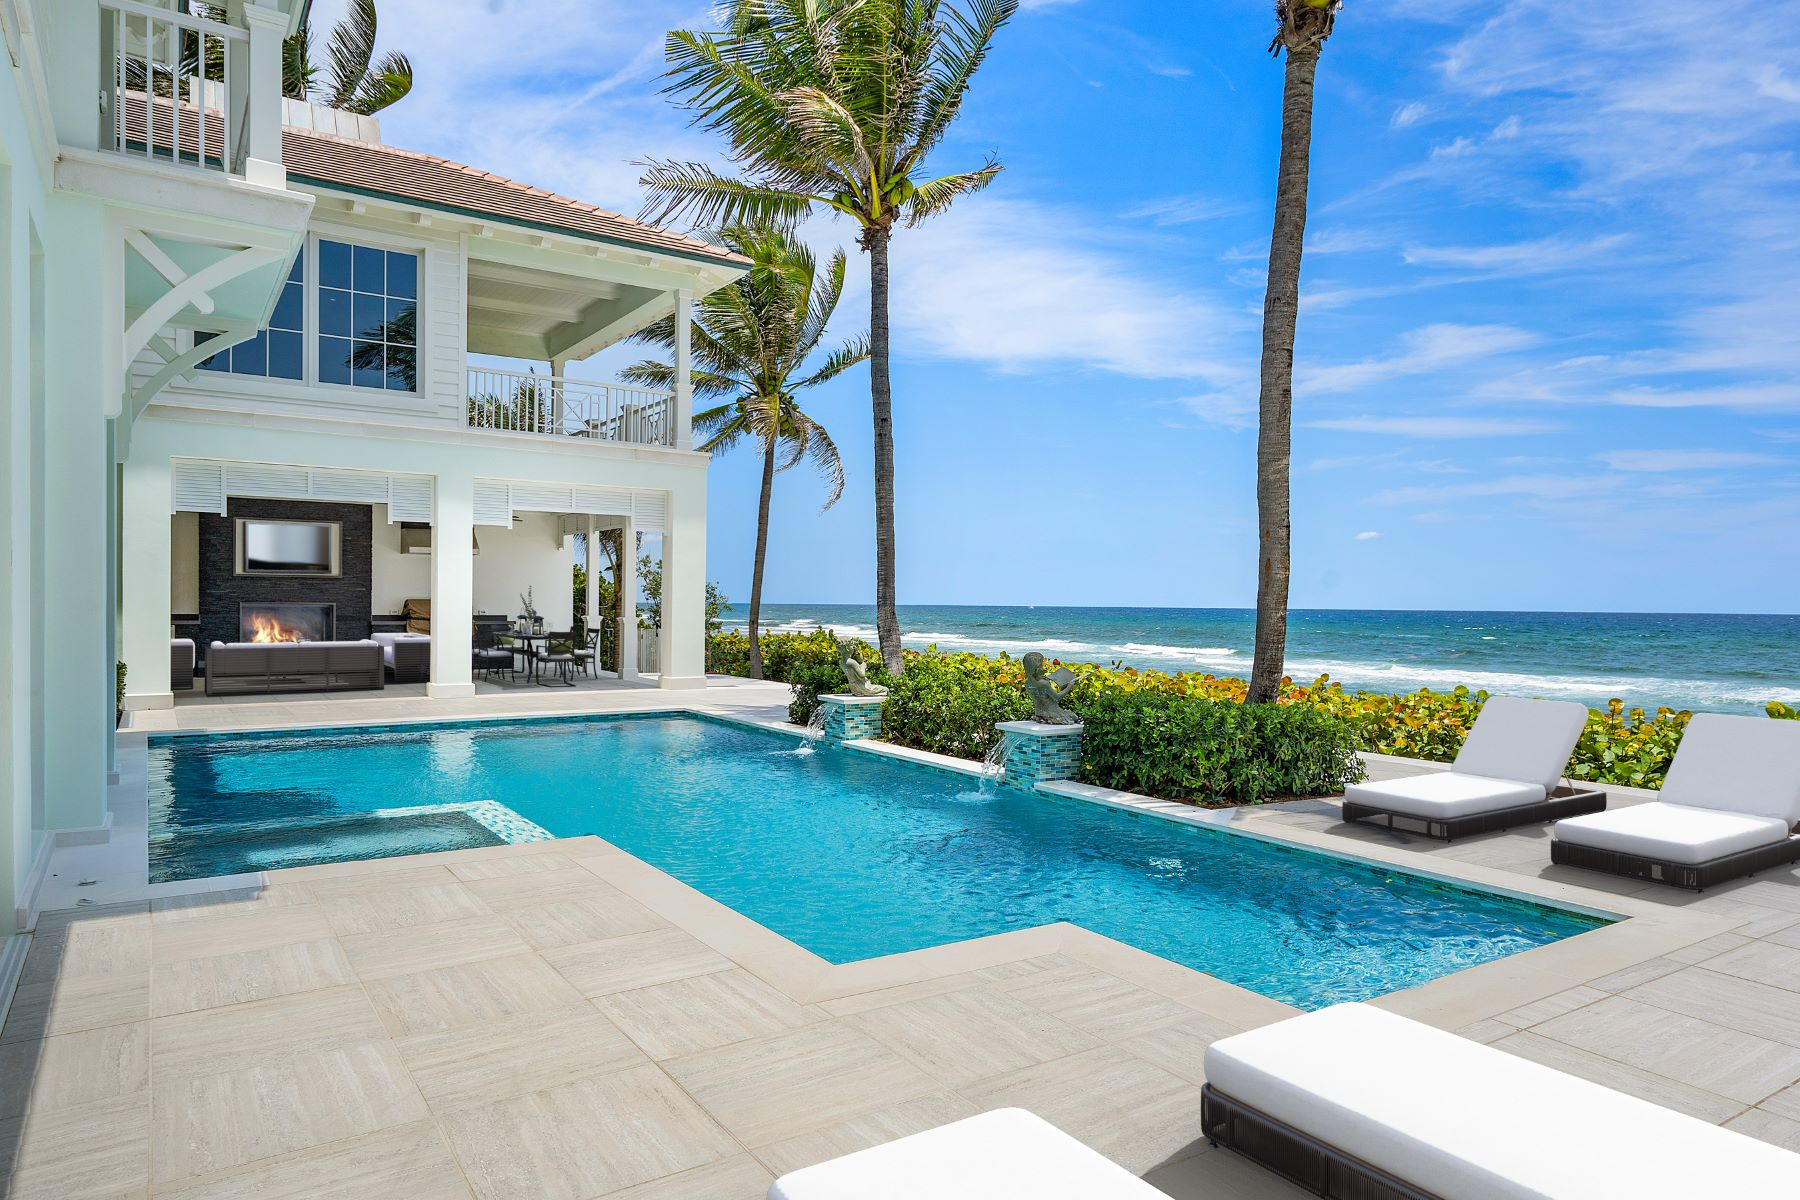 Additional photo for property listing at Sensational Oceanfront Masterpiece 3777 N Ocean Boulevard Delray Beach, Florida 33483 United States